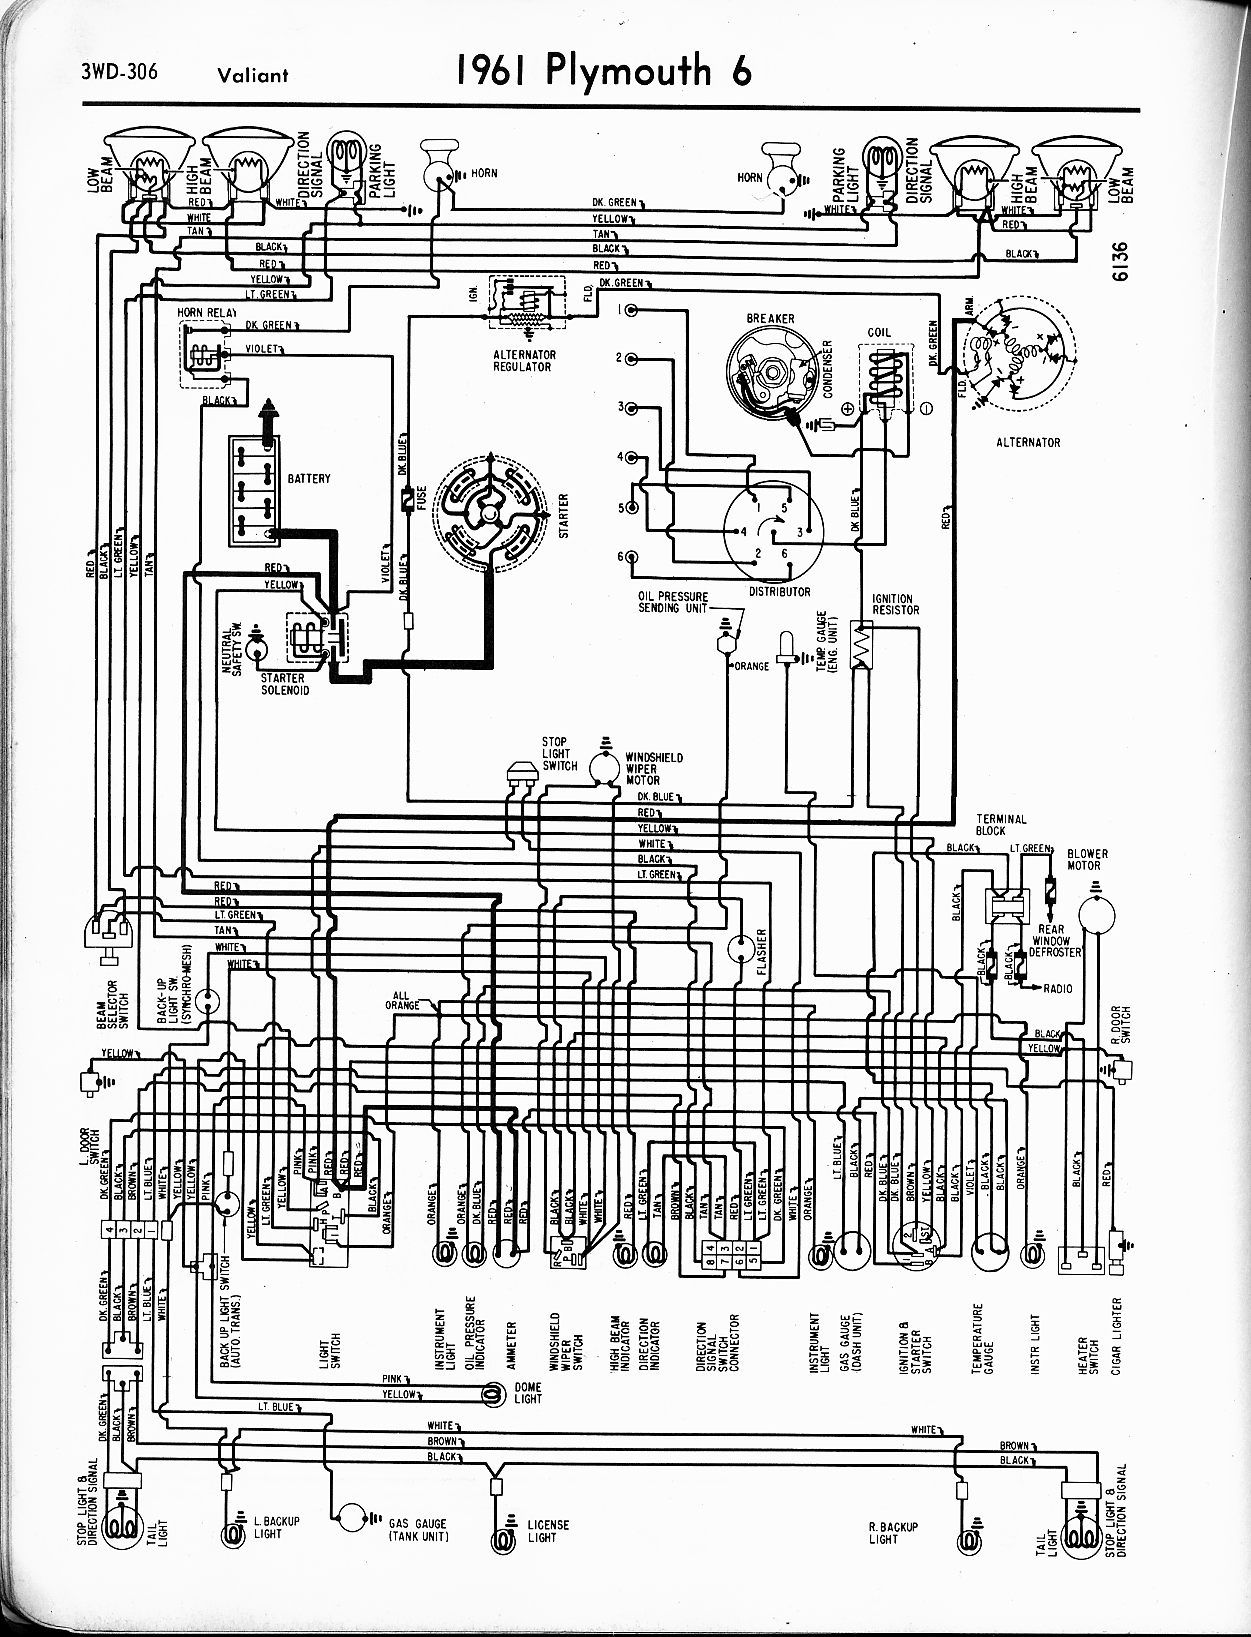 71 barracuda wiring diagram schematics wiring diagrams u2022 rh seniorlivinguniversity co Car Engine Wiring Harness On Dodge Engine Wiring Harness